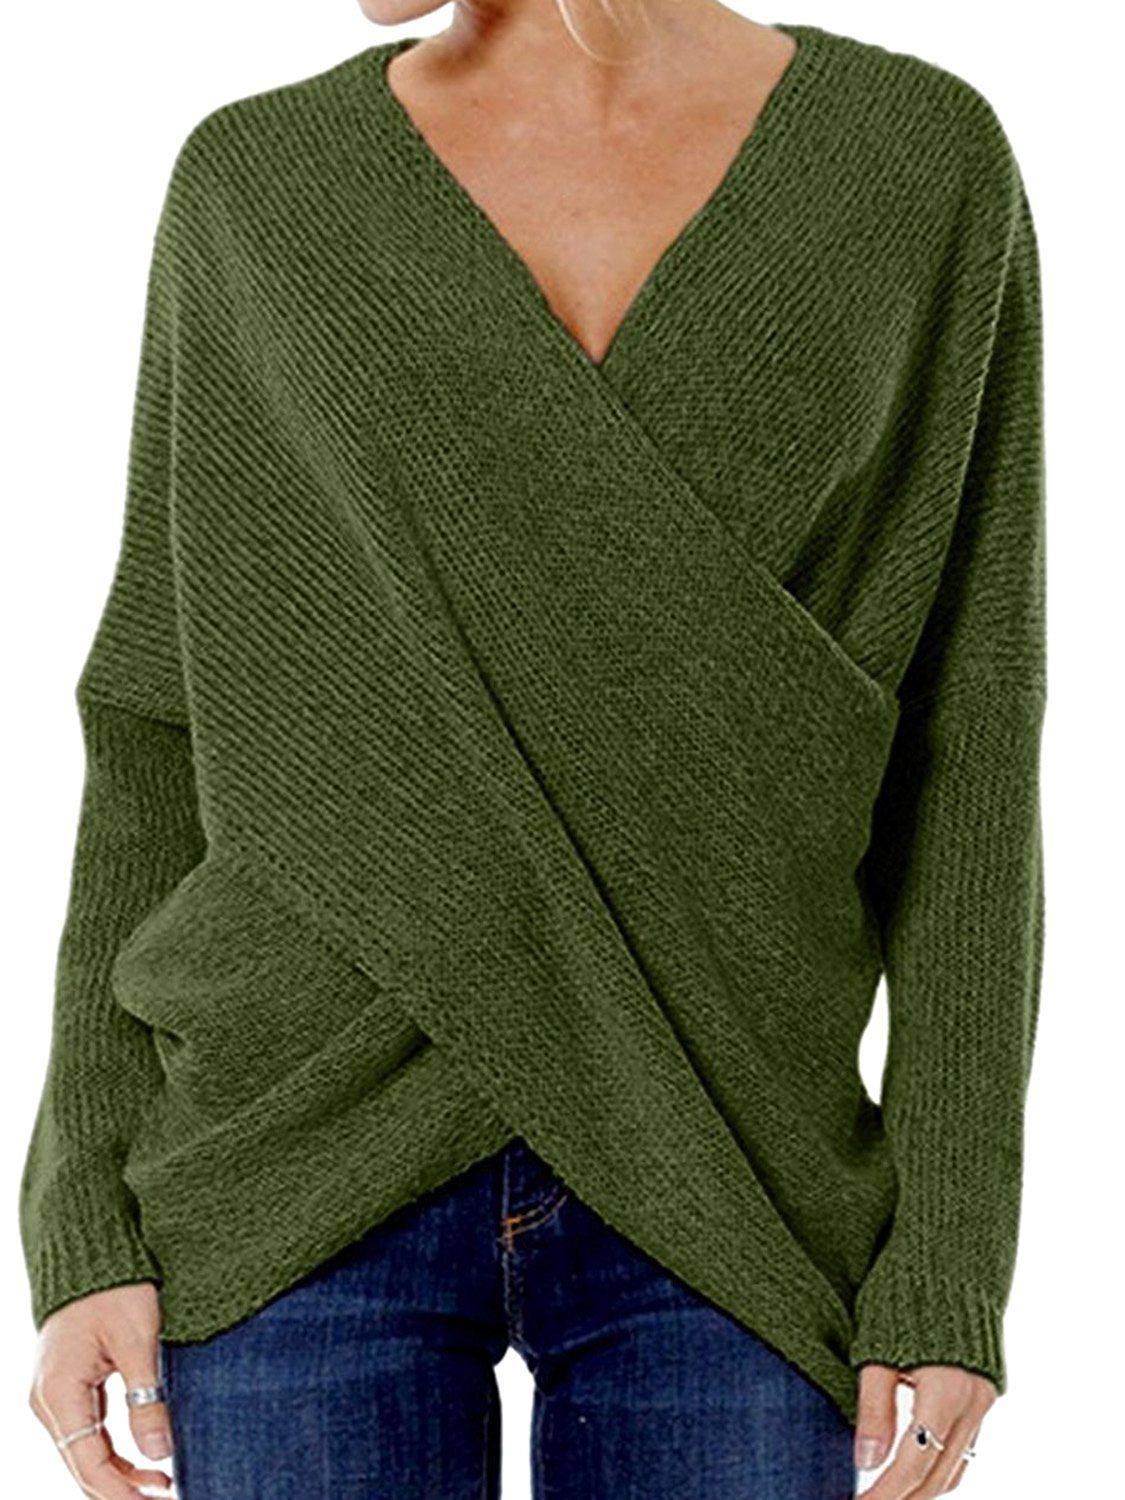 37a37ac237 Choies Women s Army Green Criss Cross Wrap Front V Neck Long Sleeve Knit  Sweater Jumper l at Amazon Women s Clothing store